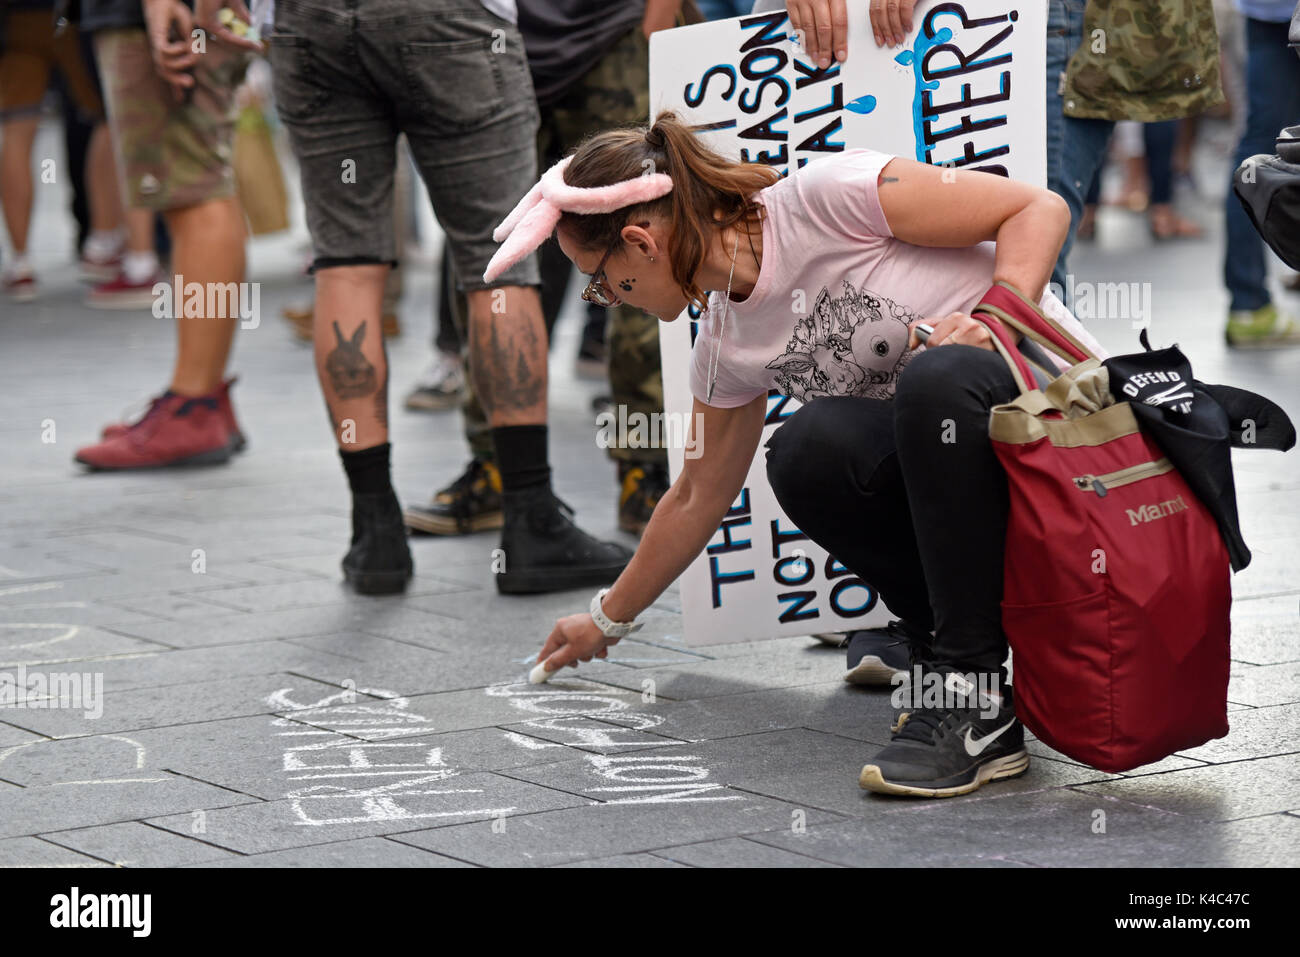 Animal rights activists protesting outside Burger King in Leicester Square, London. Female activist chalking slogans on pavement - Stock Image